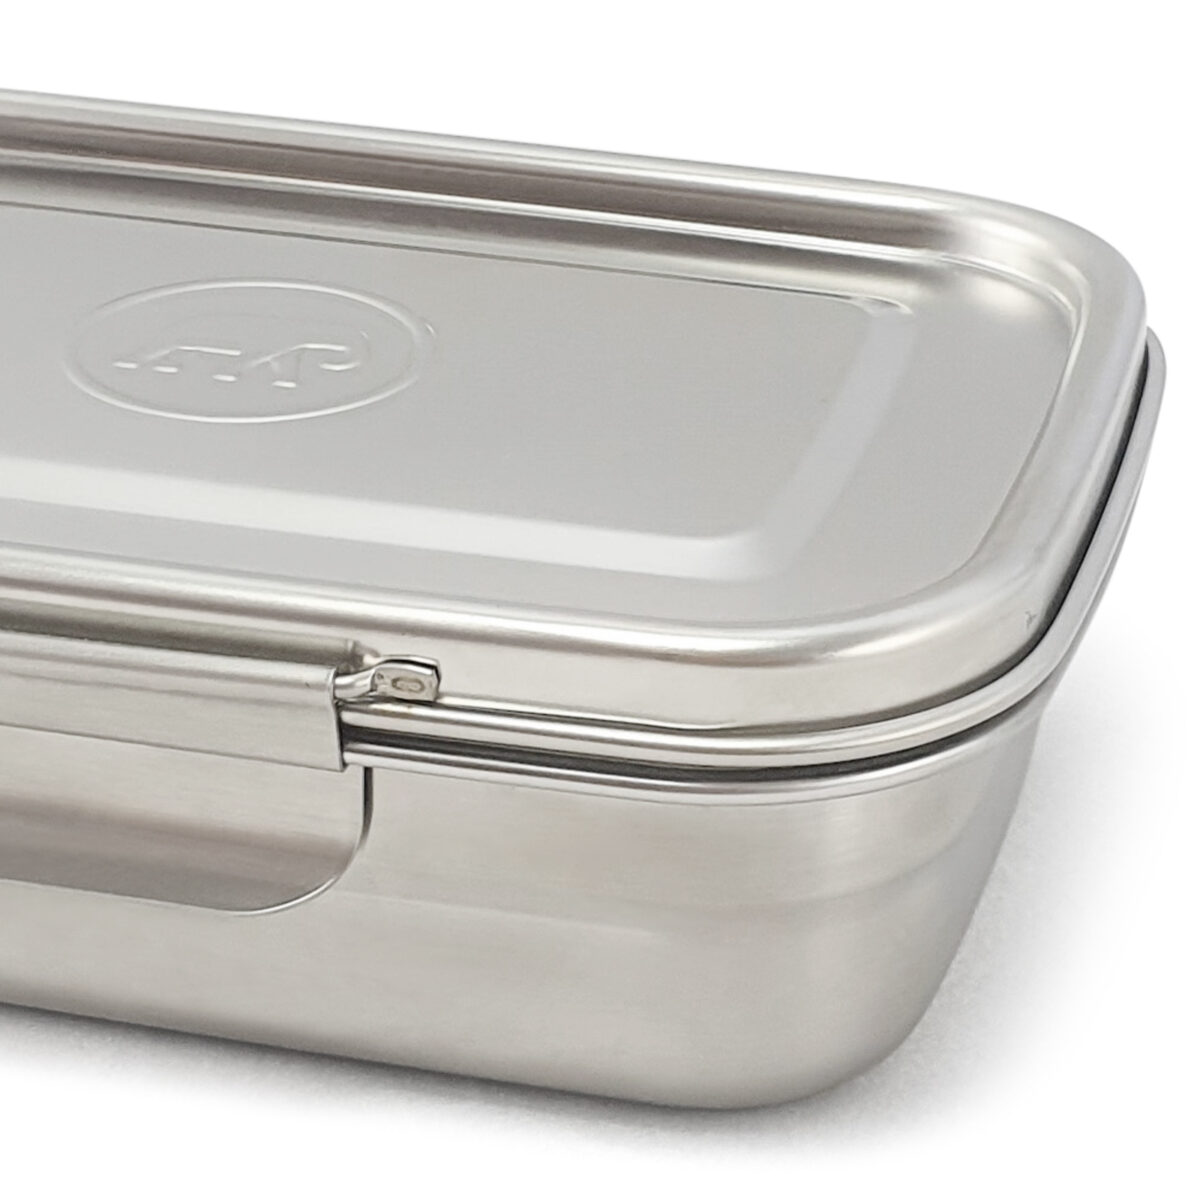 Clip and Seal Lunchbox with Divider_detail_web